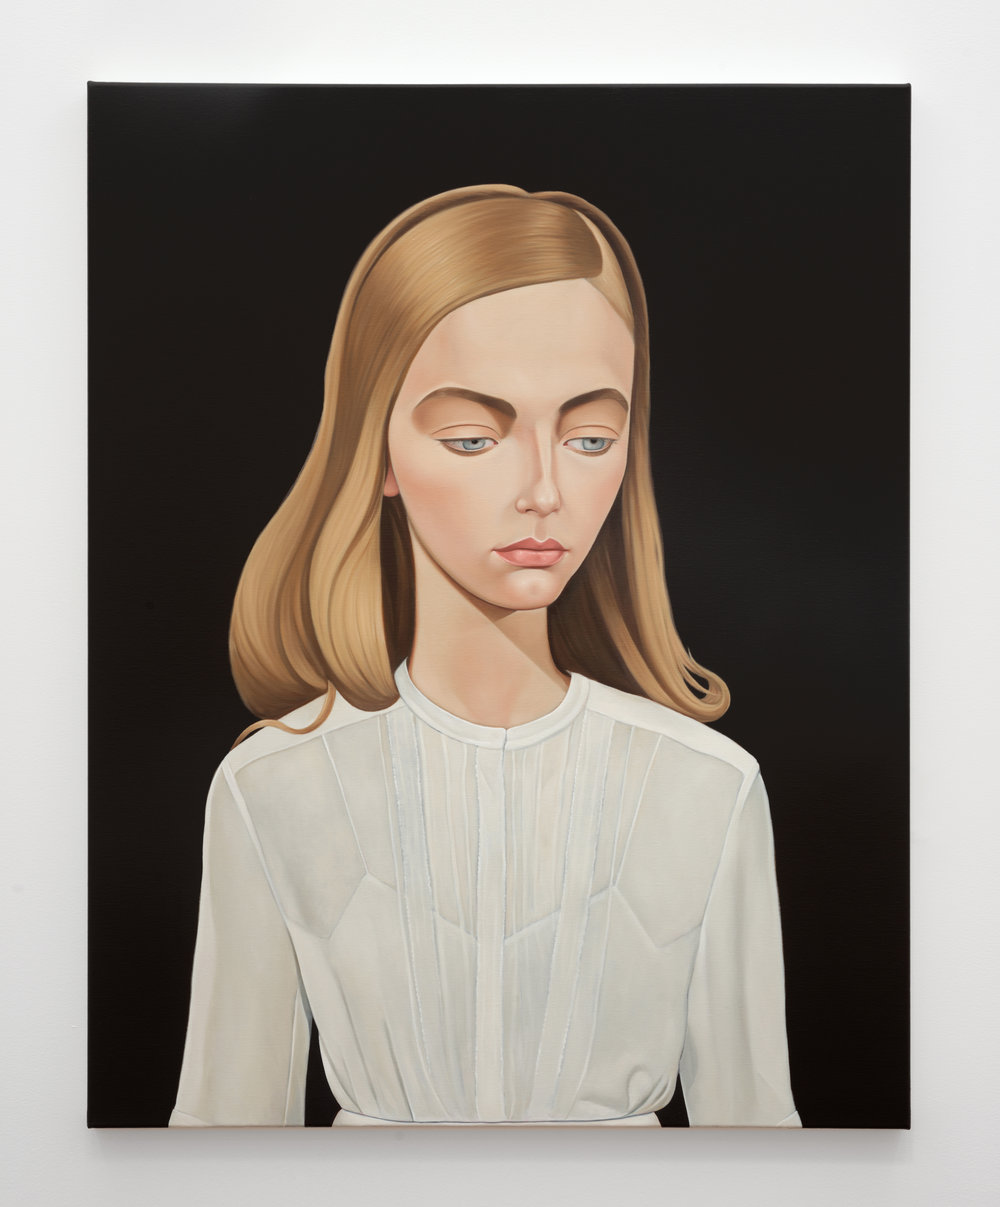 'Pam Reynolds, NDE/OBE, 1991' 2018 Oil on linen 95 x 120 cm